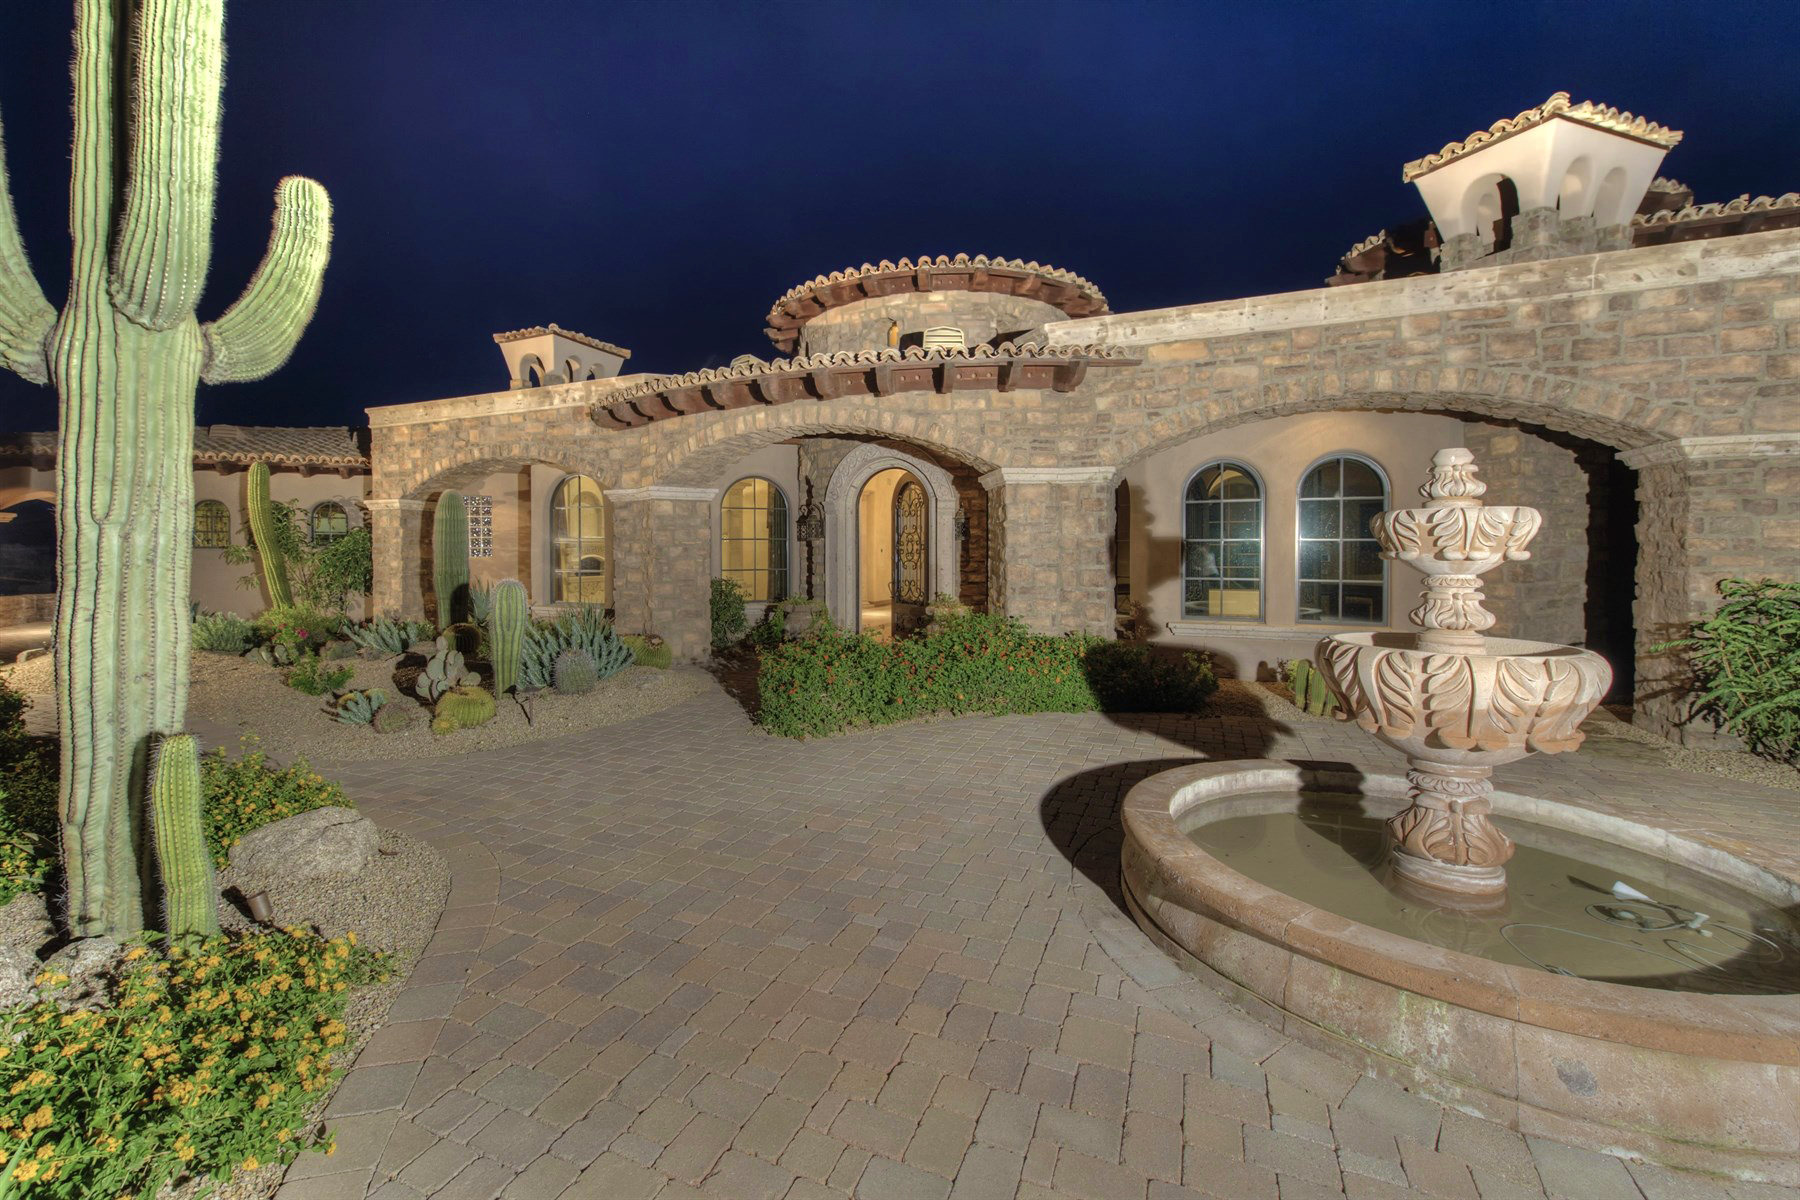 一戸建て のために 売買 アット Stunning Private Estate On Nearly 3 Acres In Guard-Gated Whisper Rock Estates 8613 E Artisan Pass Scottsdale, アリゾナ 85266 アメリカ合衆国